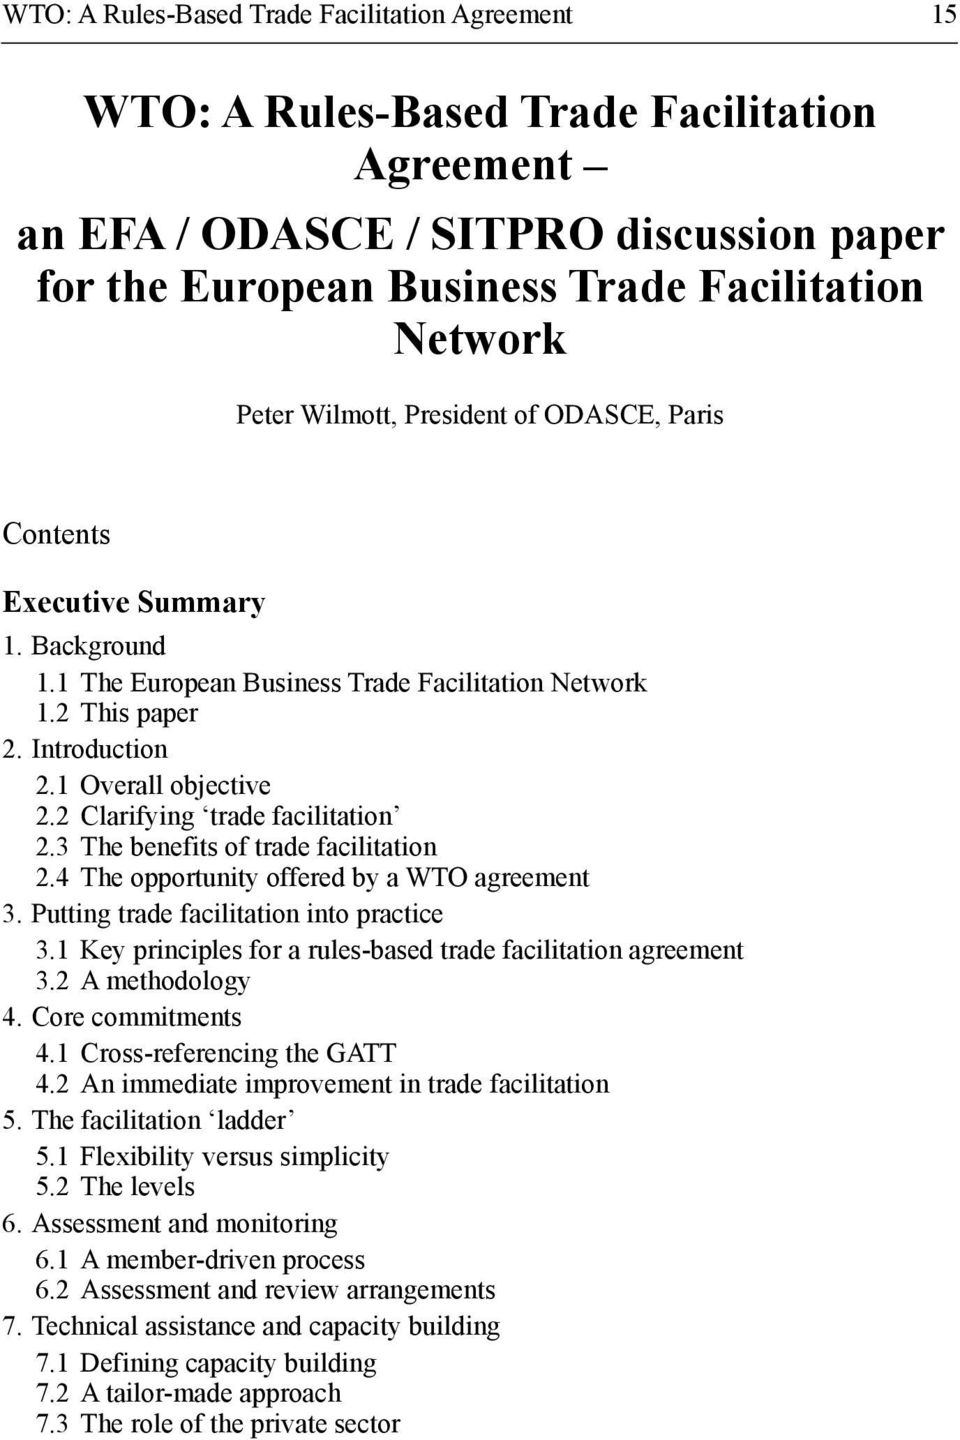 2 Clarifying trade facilitation 2.3 The benefits of trade facilitation 2.4 The opportunity offered by a WTO agreement 3. Putting trade facilitation into practice 3.